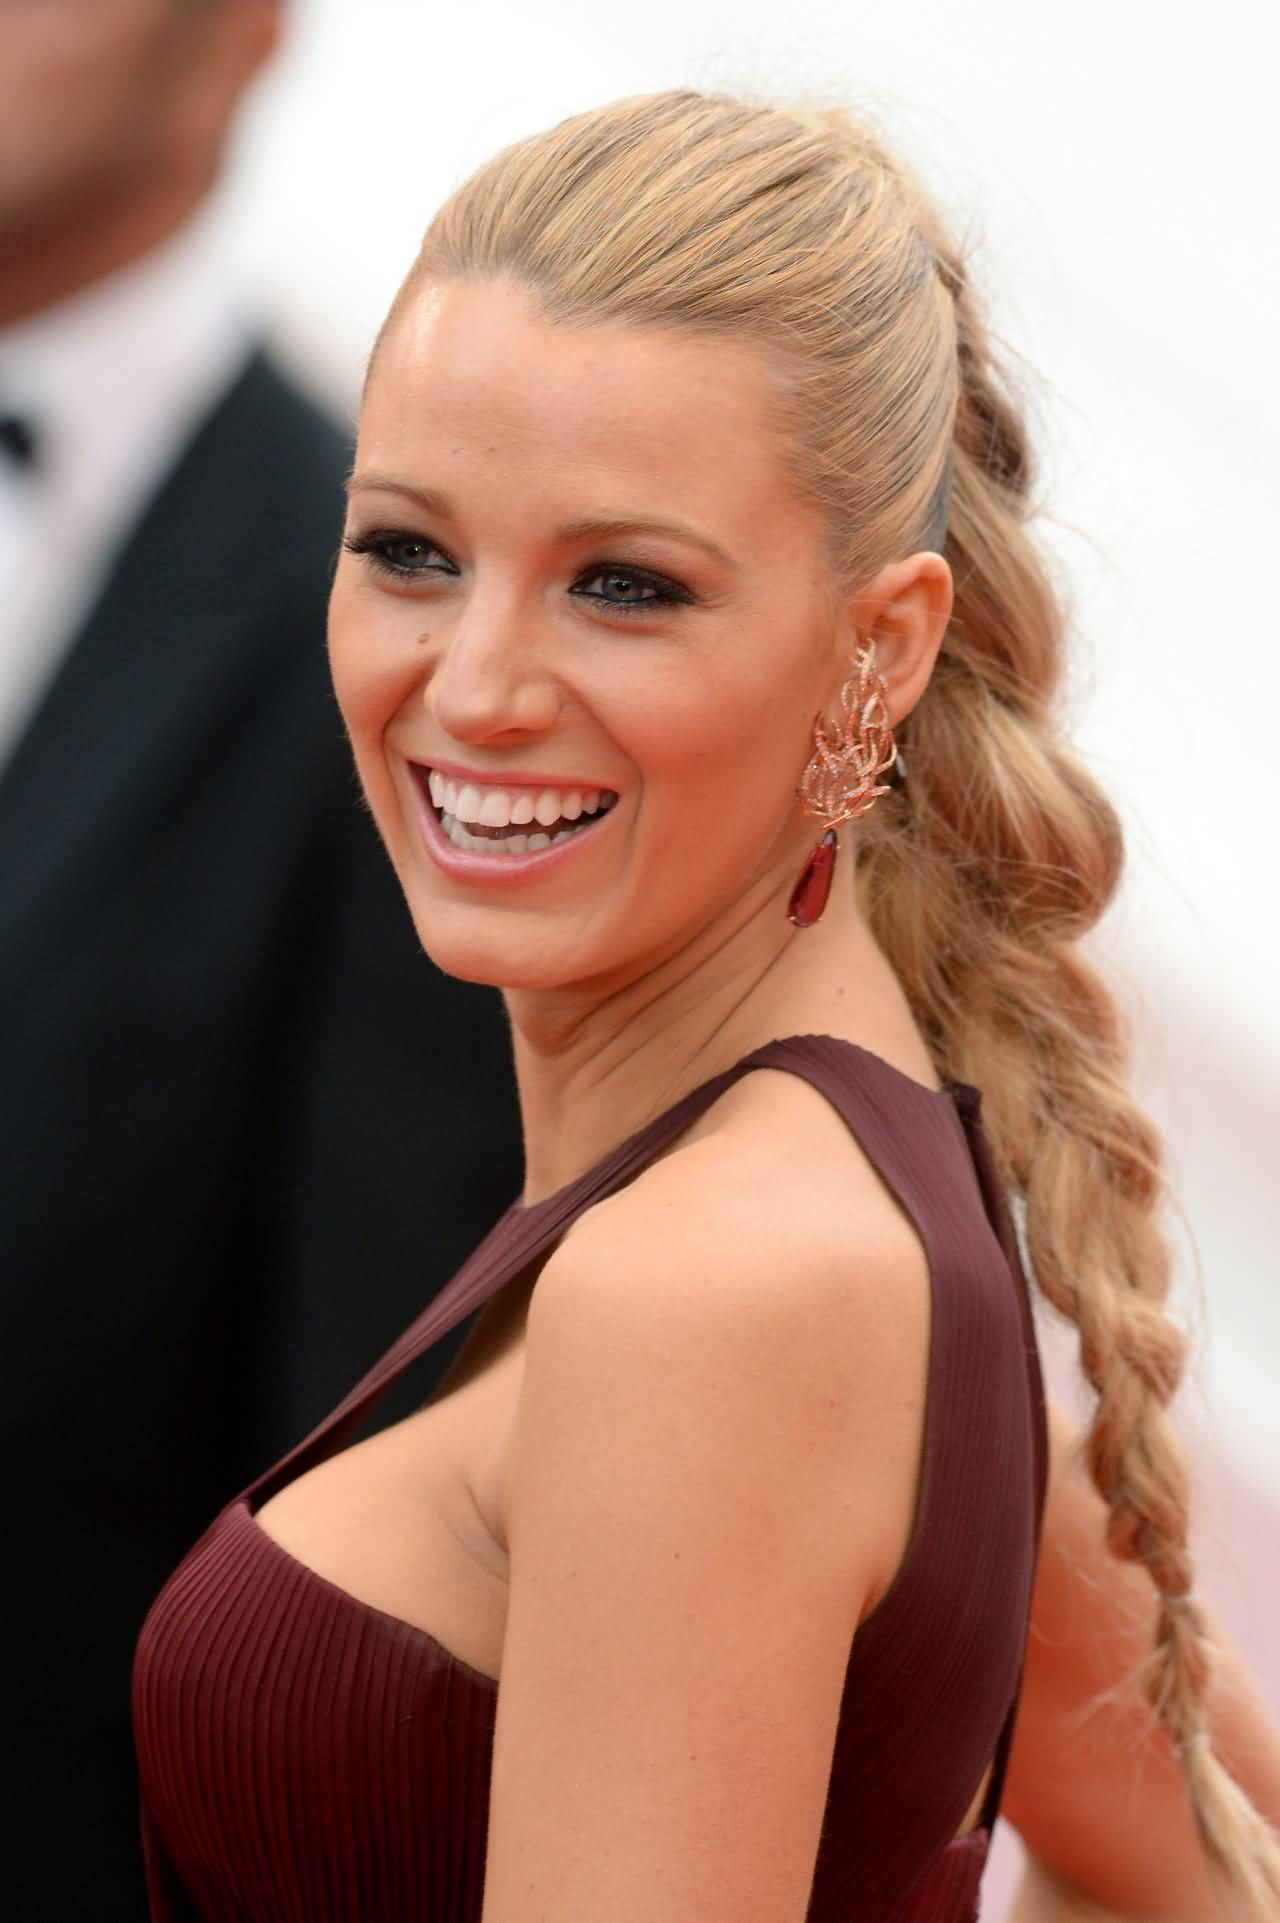 Charming braid style Ponytail hairstyle